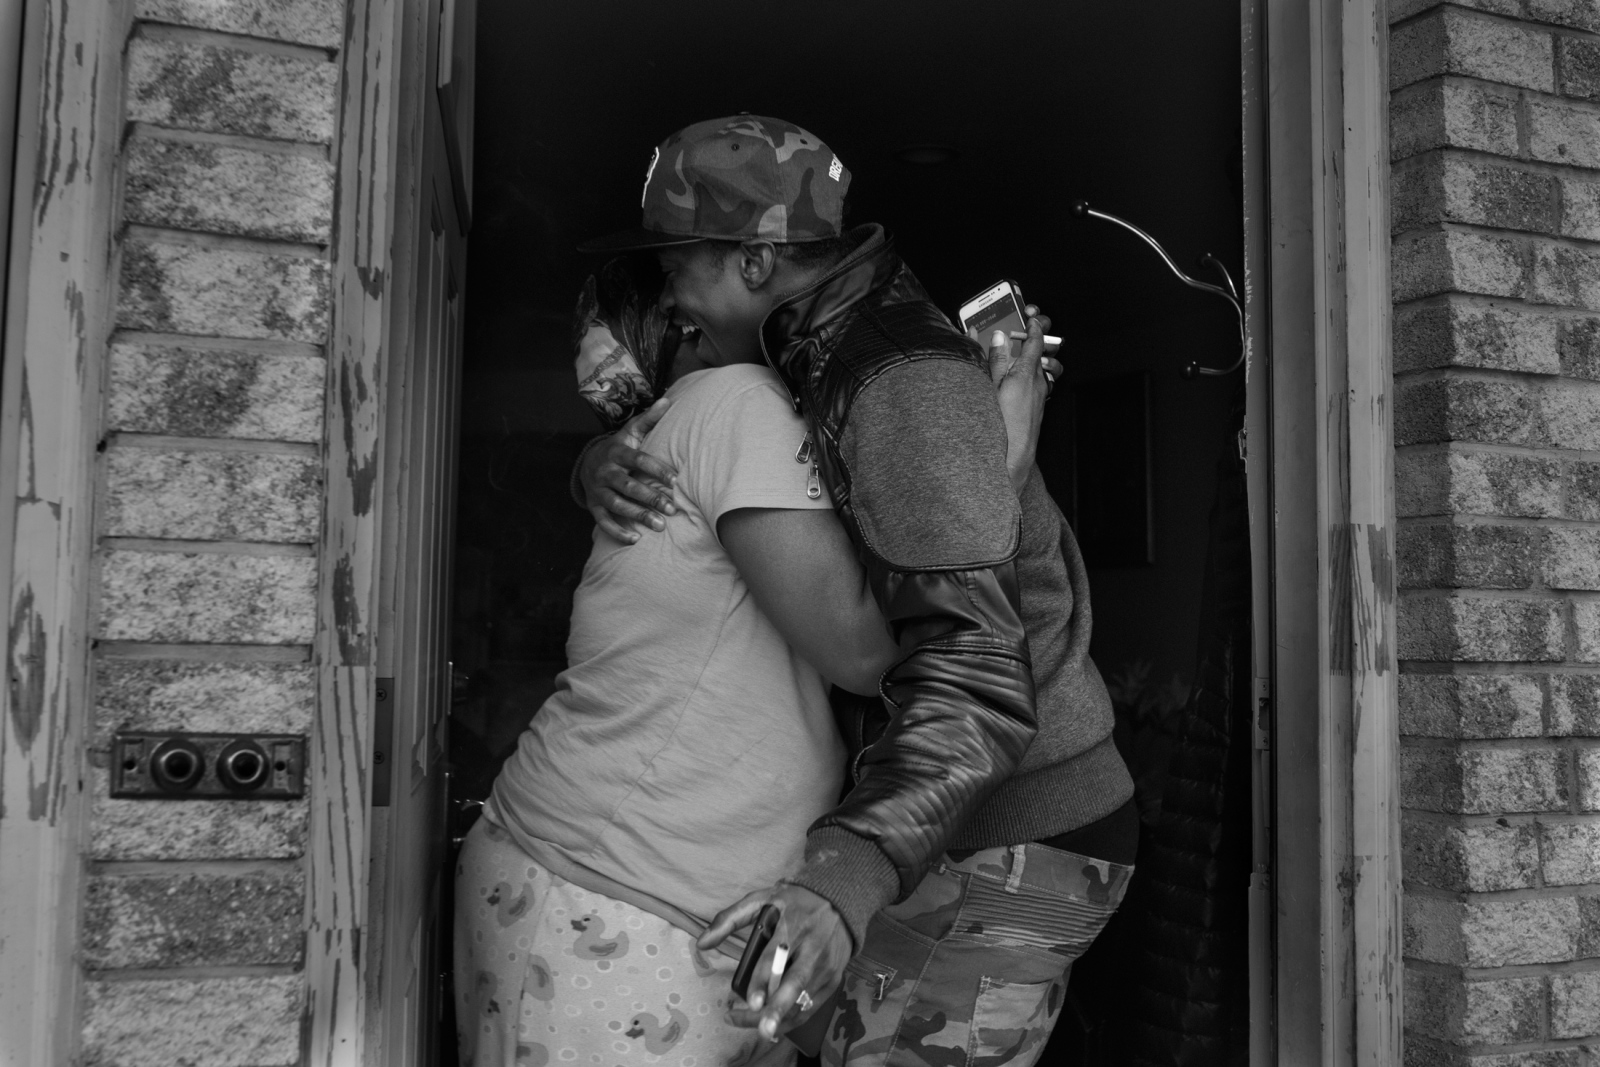 Two days after getting released from Rikers Island, Carl Kelly gets reunited with his mom at her house inFar Rockaway.His mother did not know where he was while he was imprisoned as the department of corrections wouldnot give her any information.April 21st, 2016.